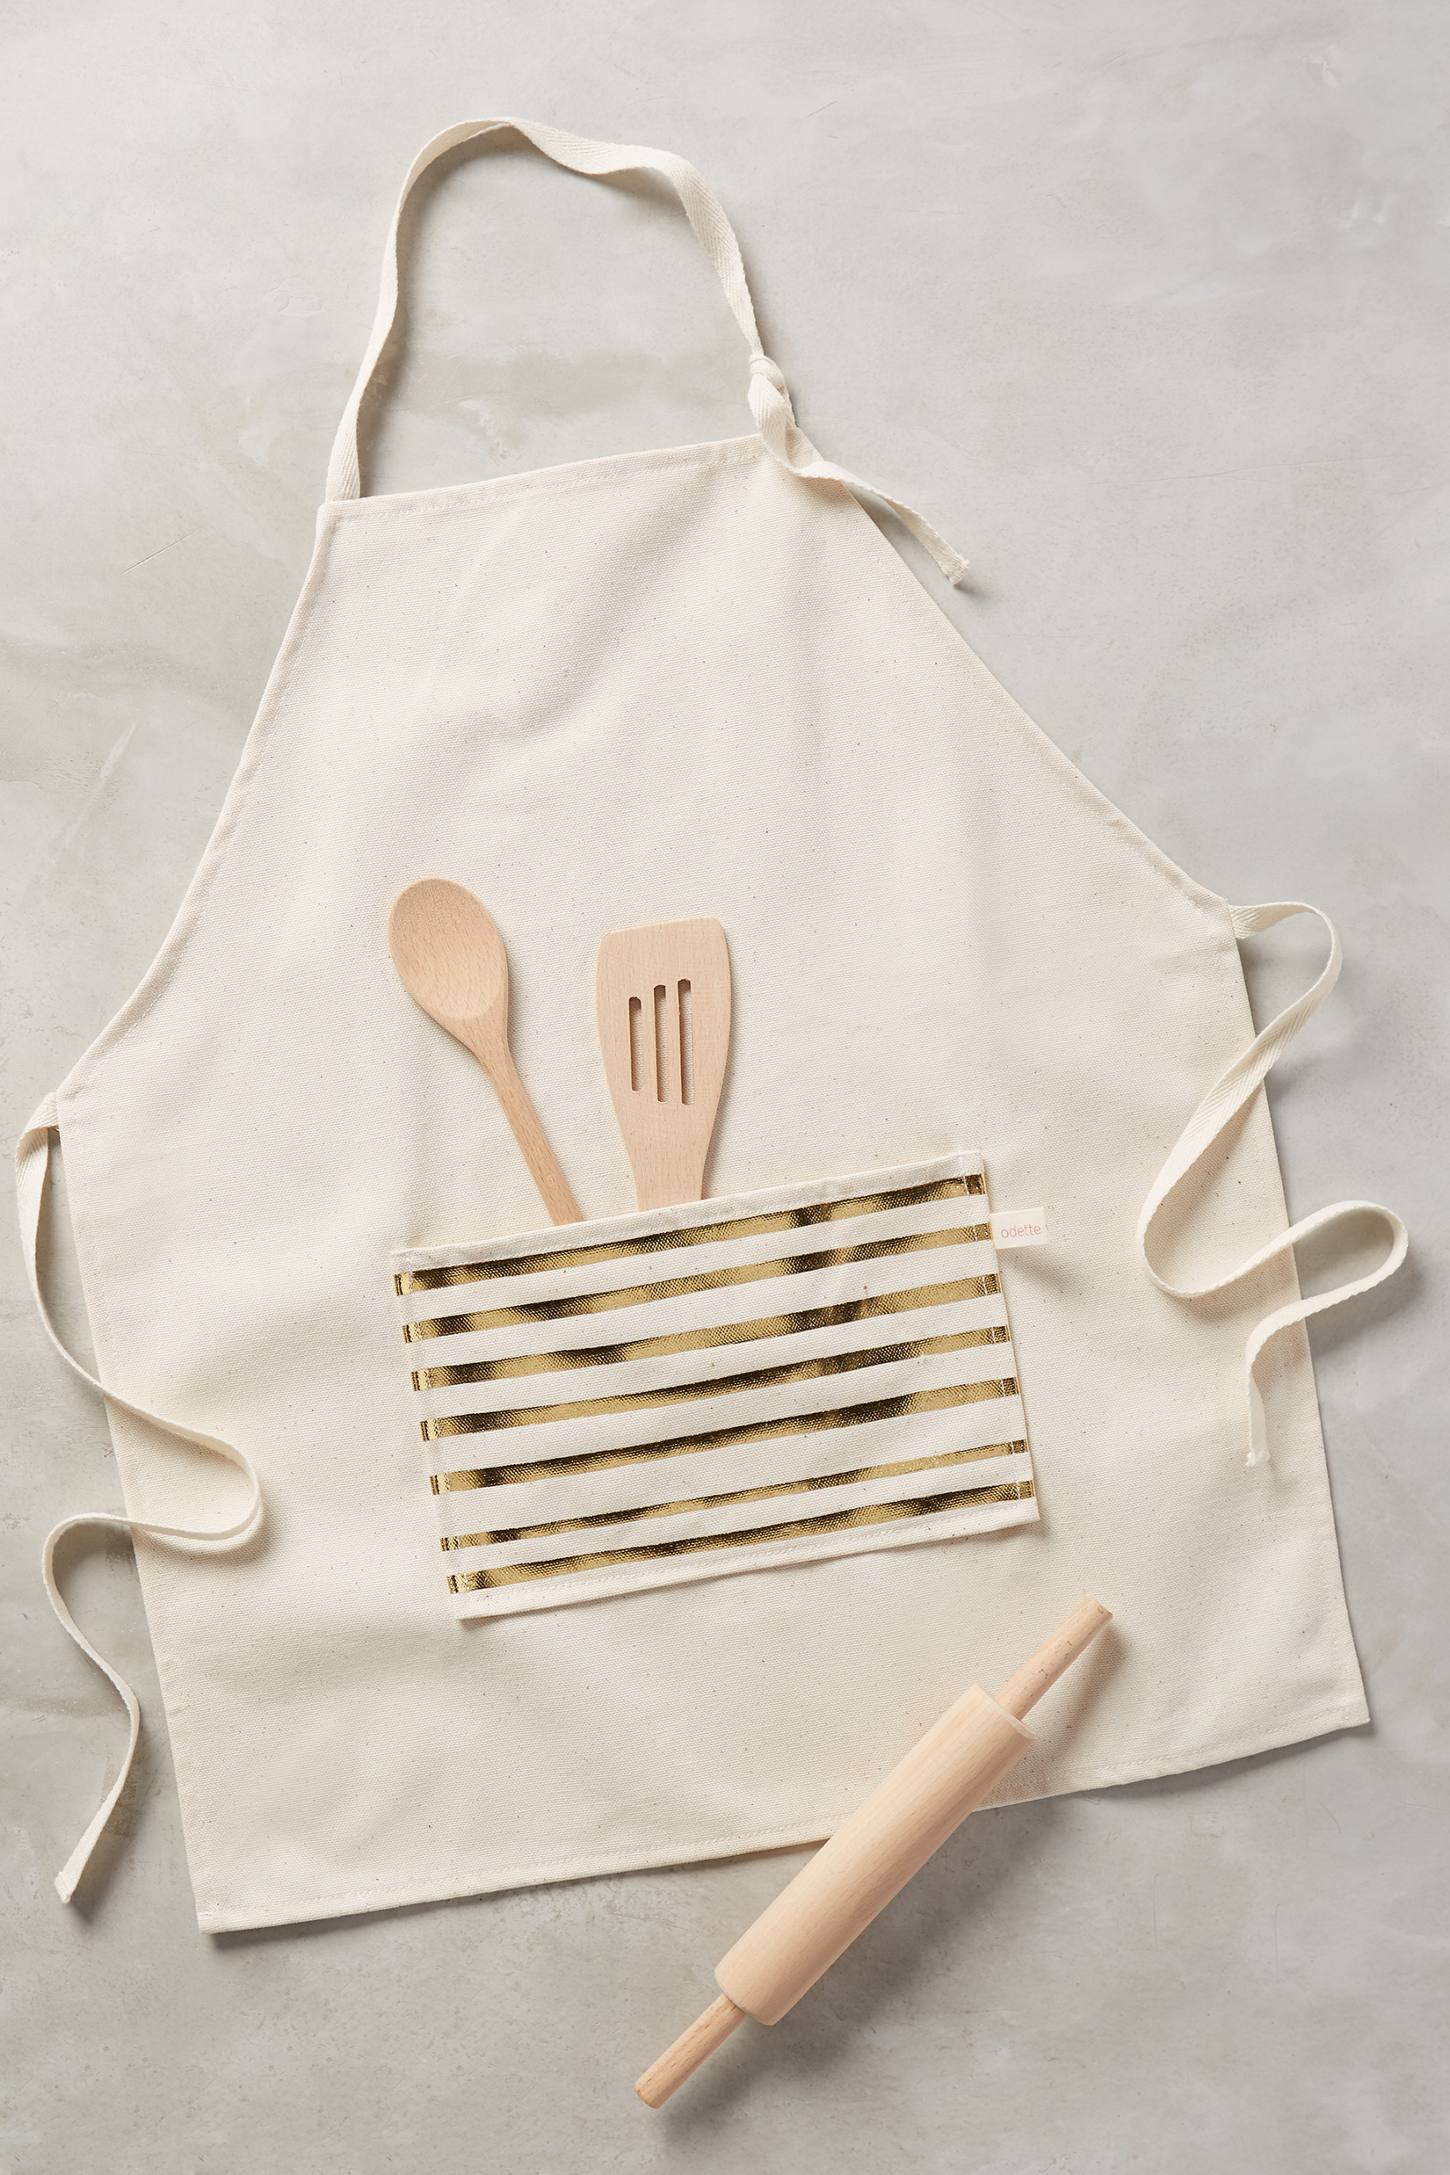 Chef's Apron Play Set